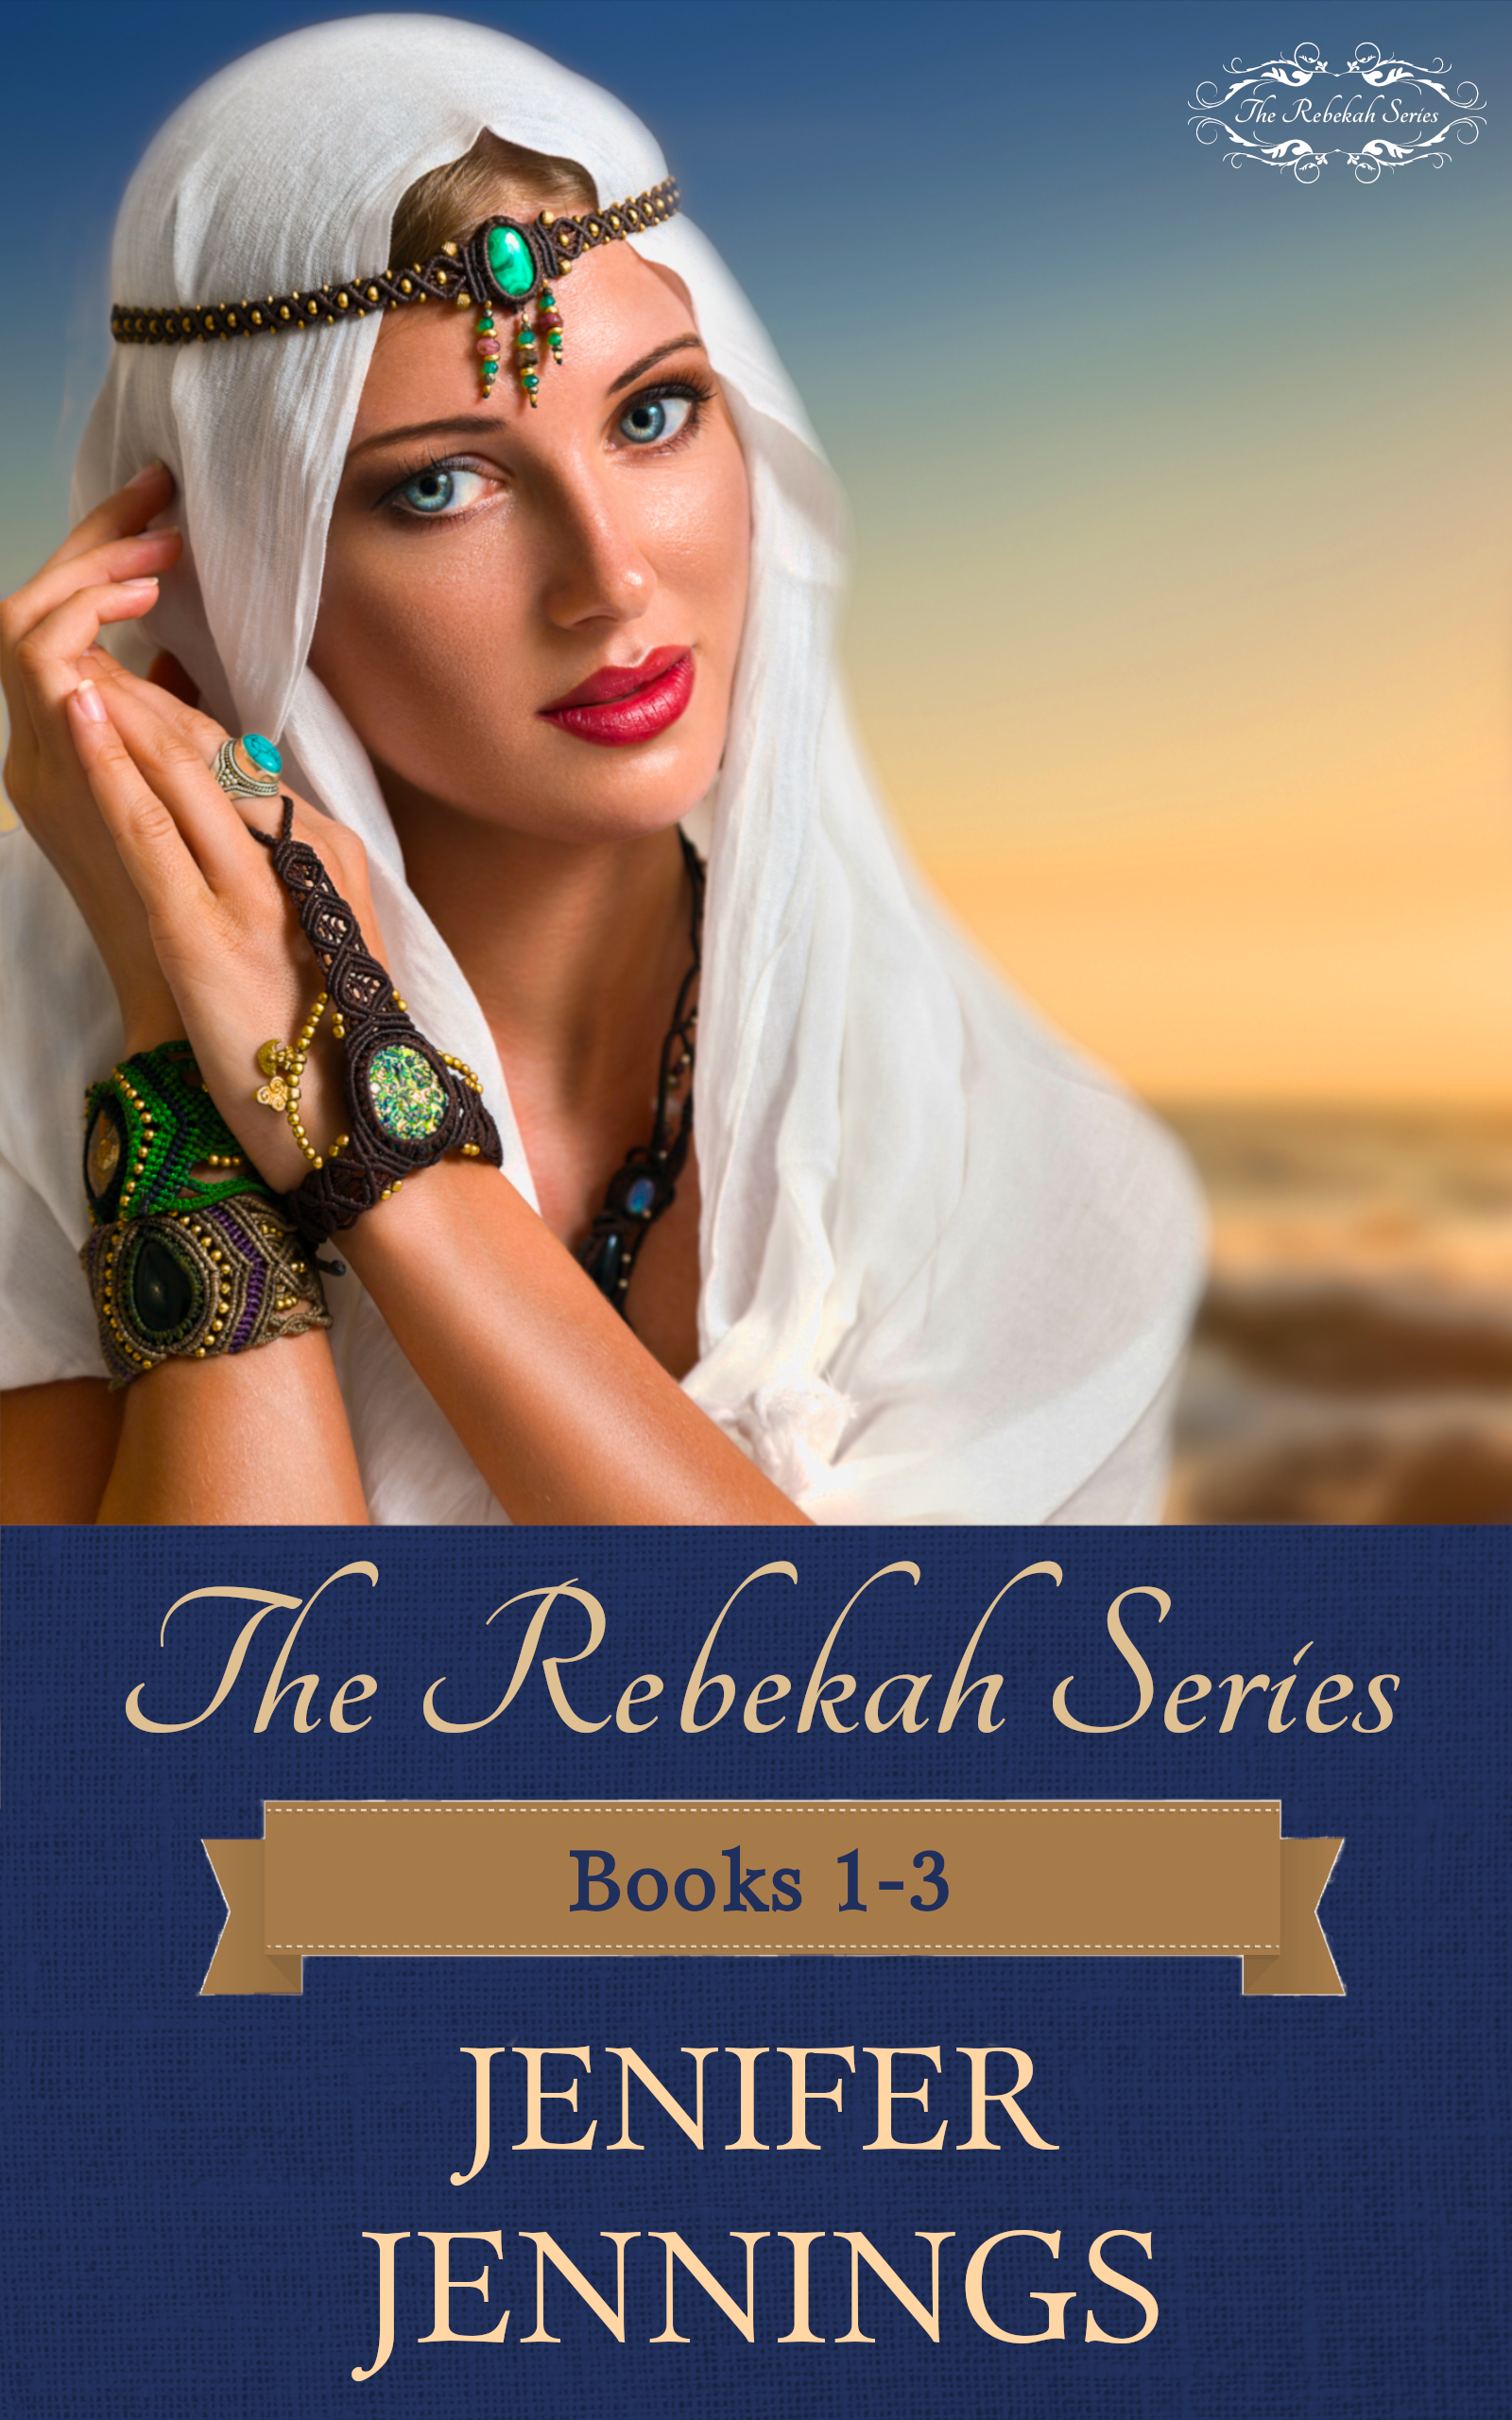 The Rebekah Series: Books 1-3